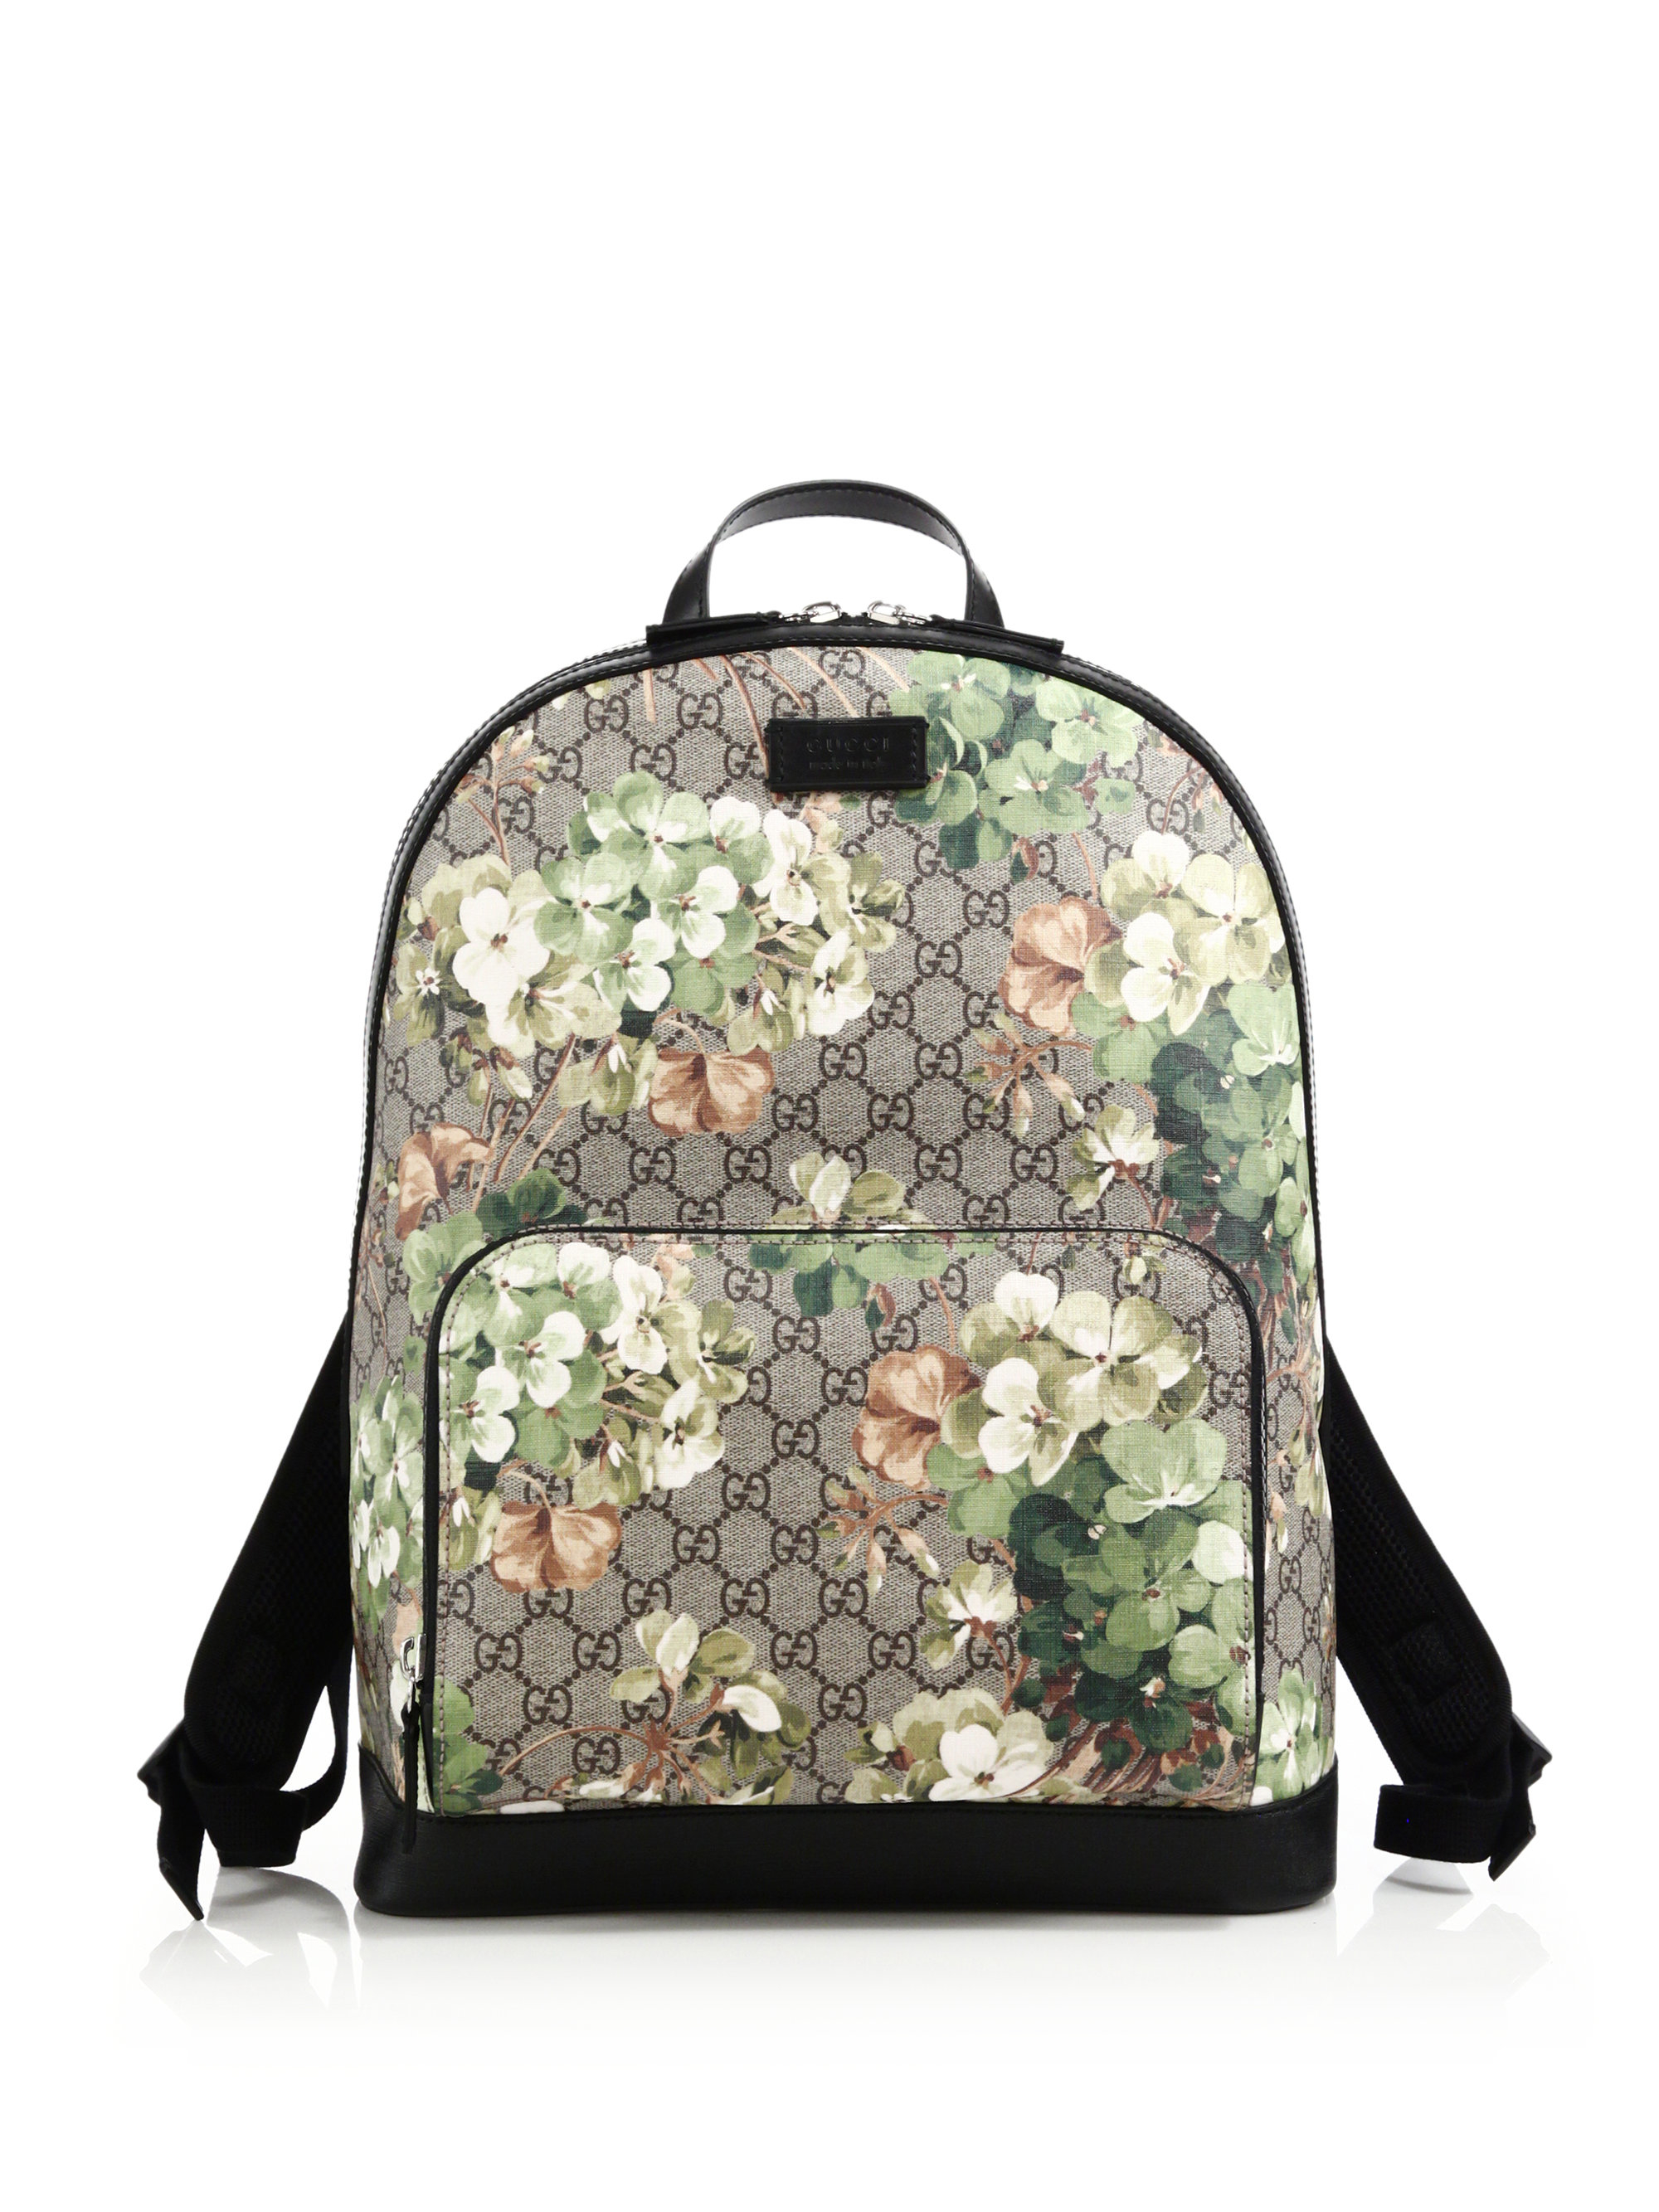 Lyst - Gucci Blooms Gg Supreme Canvas Backpack for Men 04452fed5118d